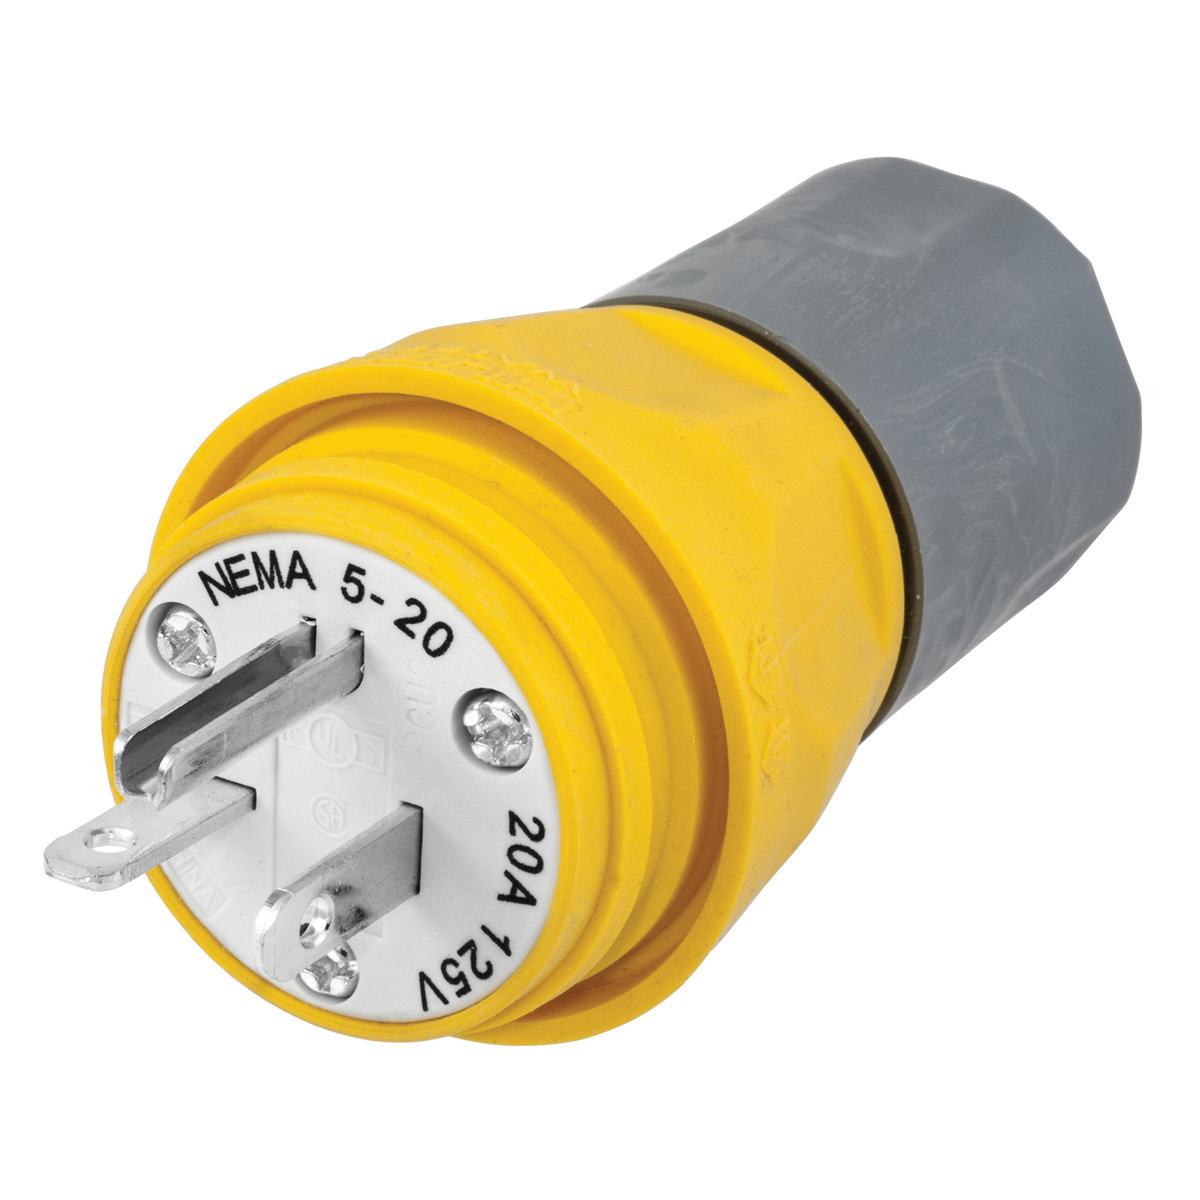 Hubbell Wiring Hbl14w33a 3 Wire 2 Pole Straight Blade Industrial Ac Electric Plug Grade Watertight